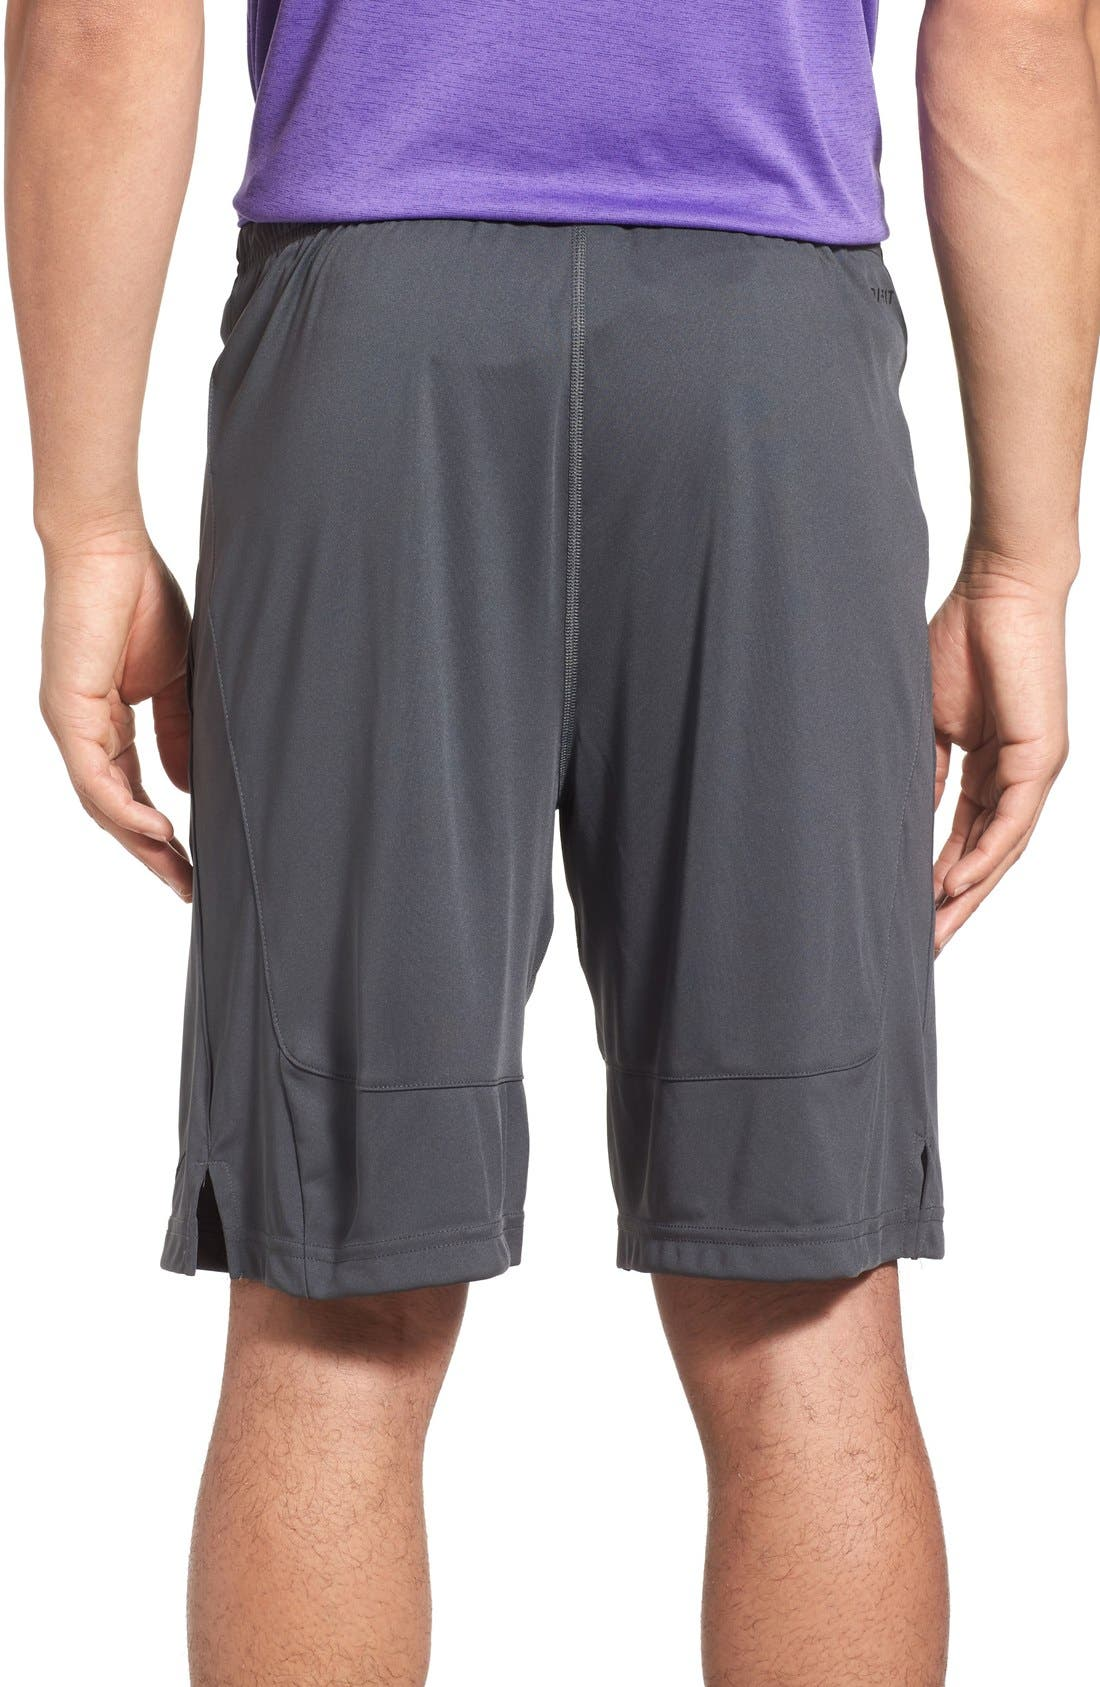 'Fly' Dri-FIT Training Shorts,                             Alternate thumbnail 79, color,